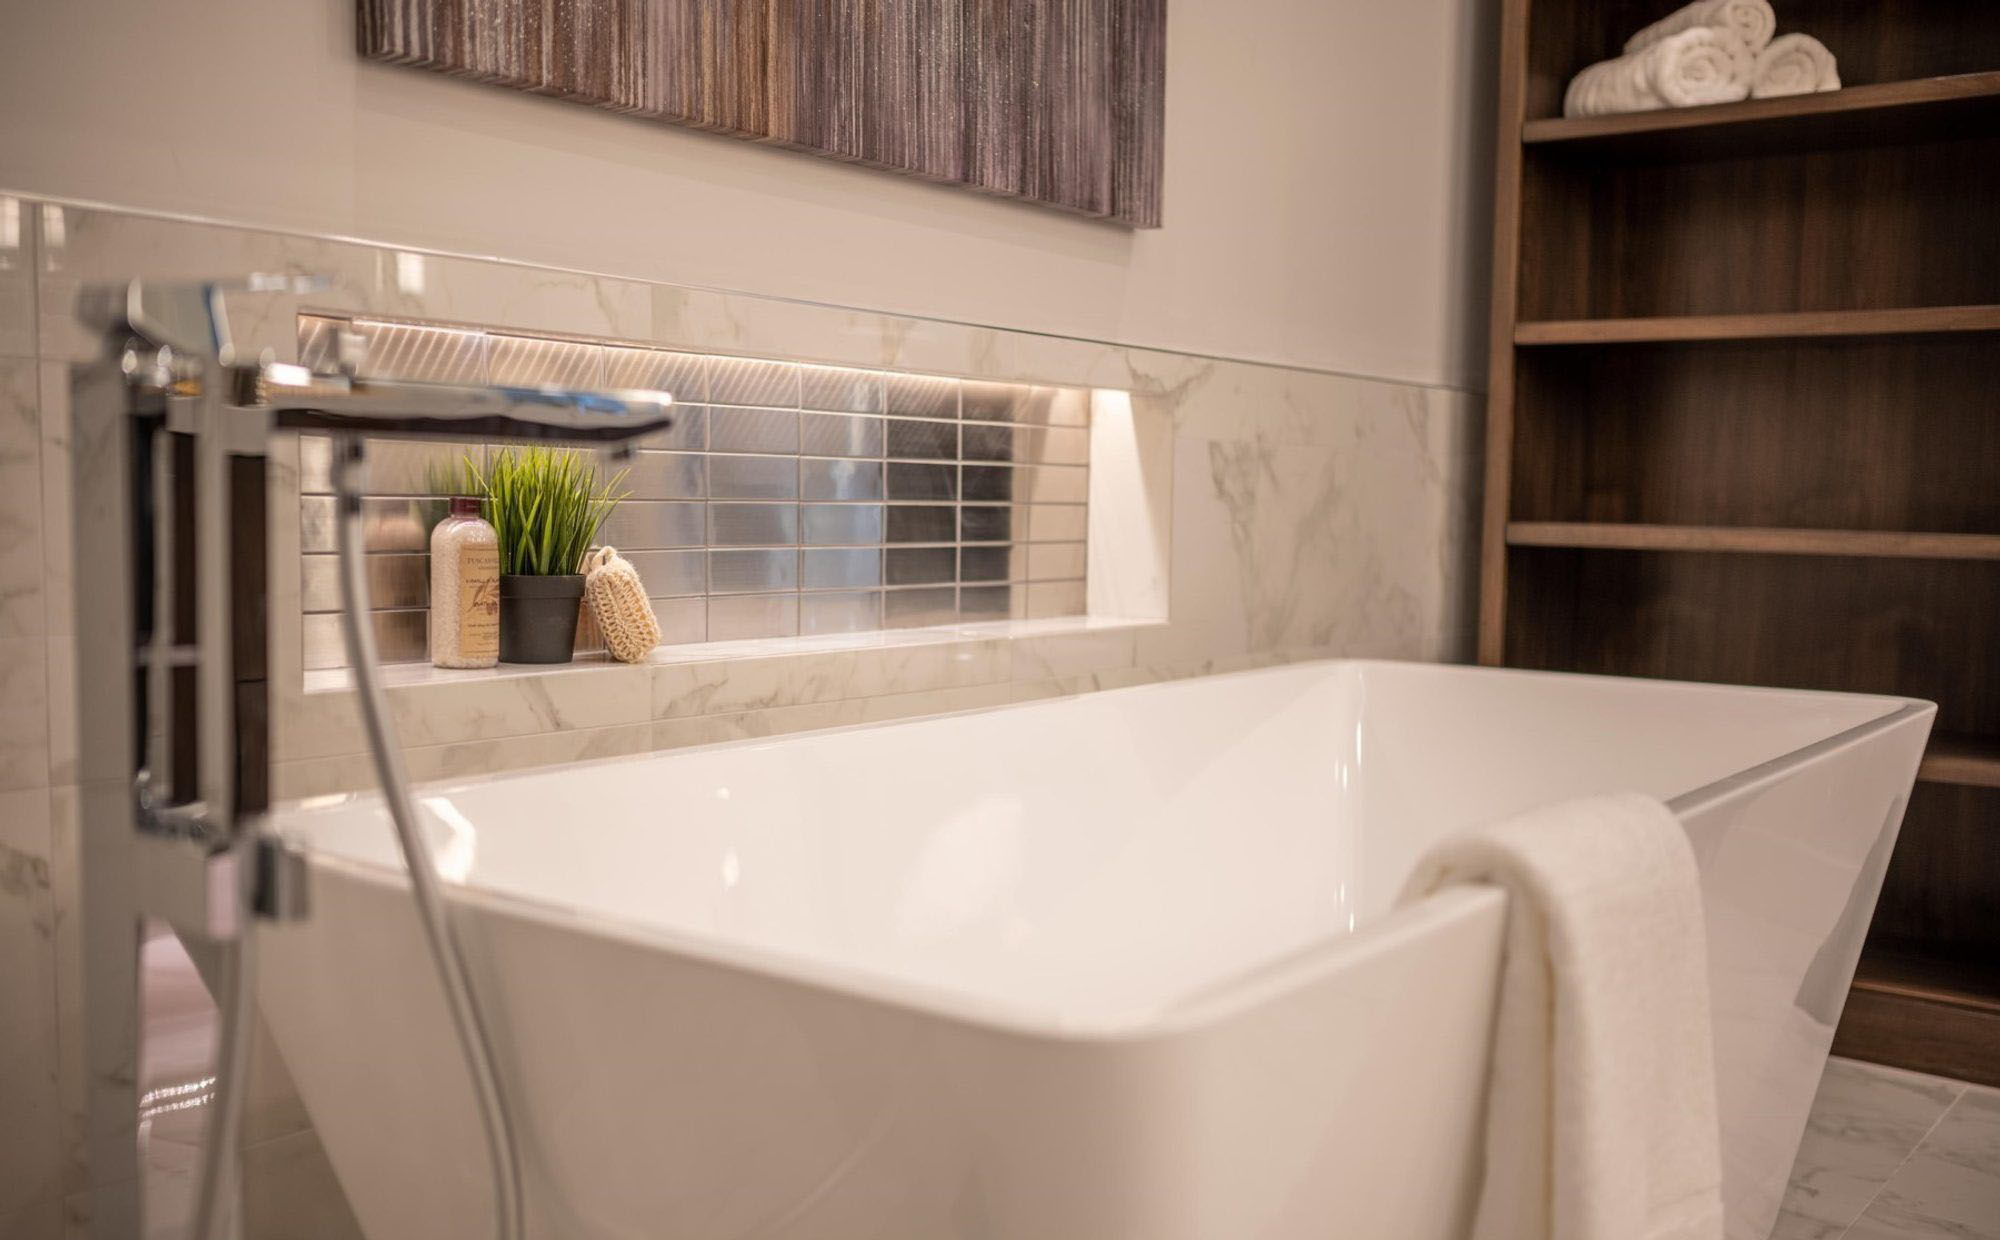 Modern bathroom with large white soaking tub, chrome faucets and built in shelf with metallic tile.